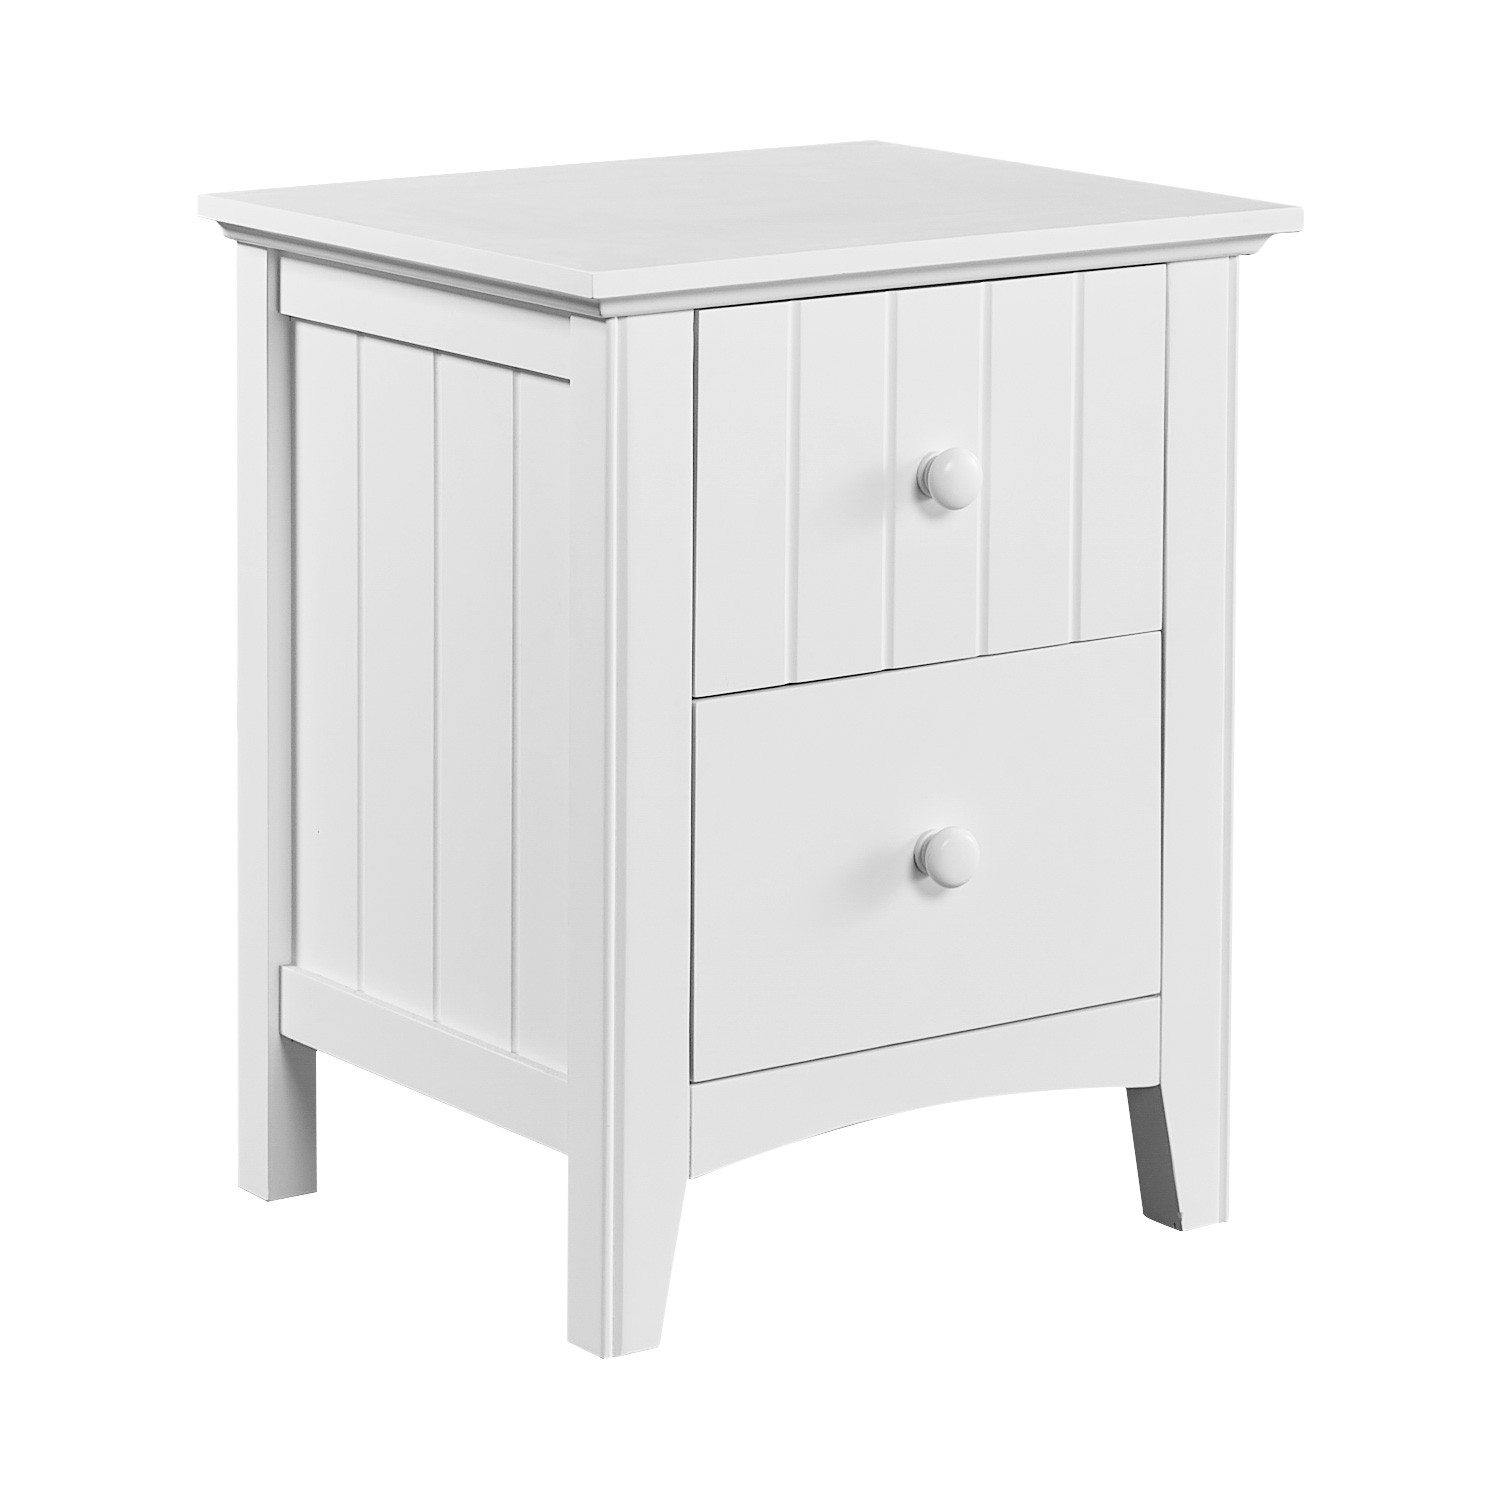 Louin Poplar Timber Bedside Table